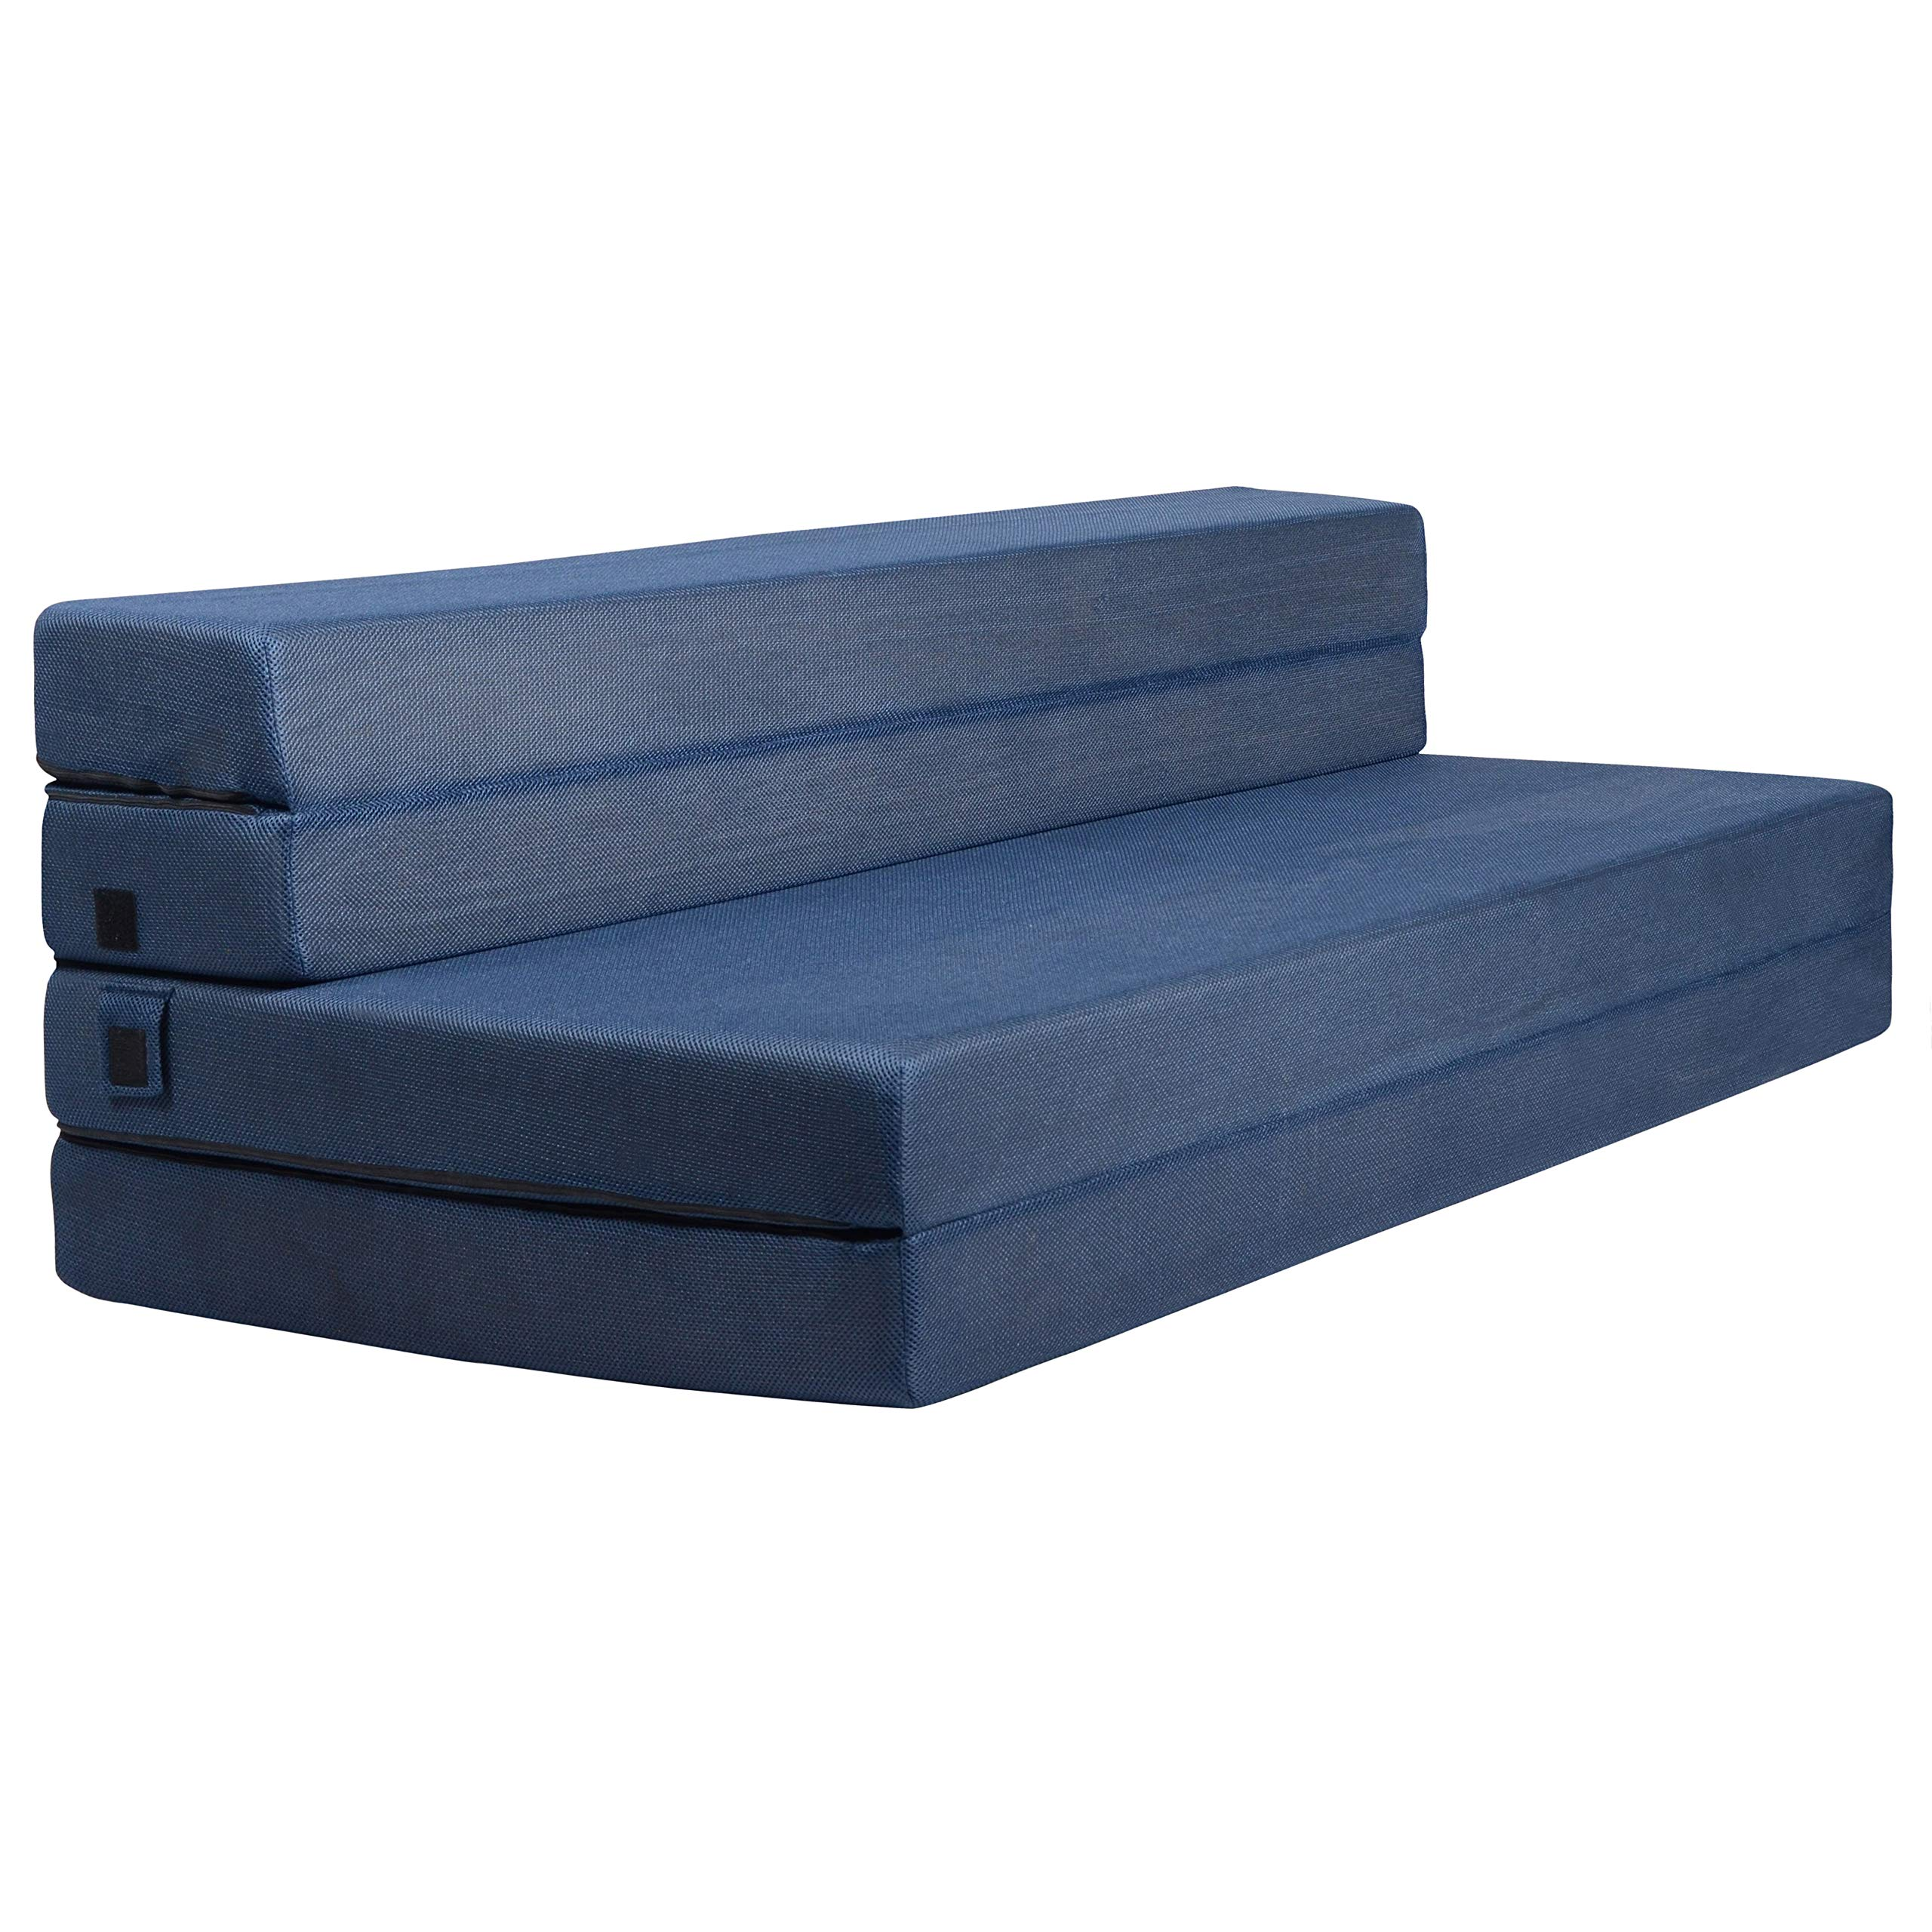 sofa beds amazon com rh amazon com